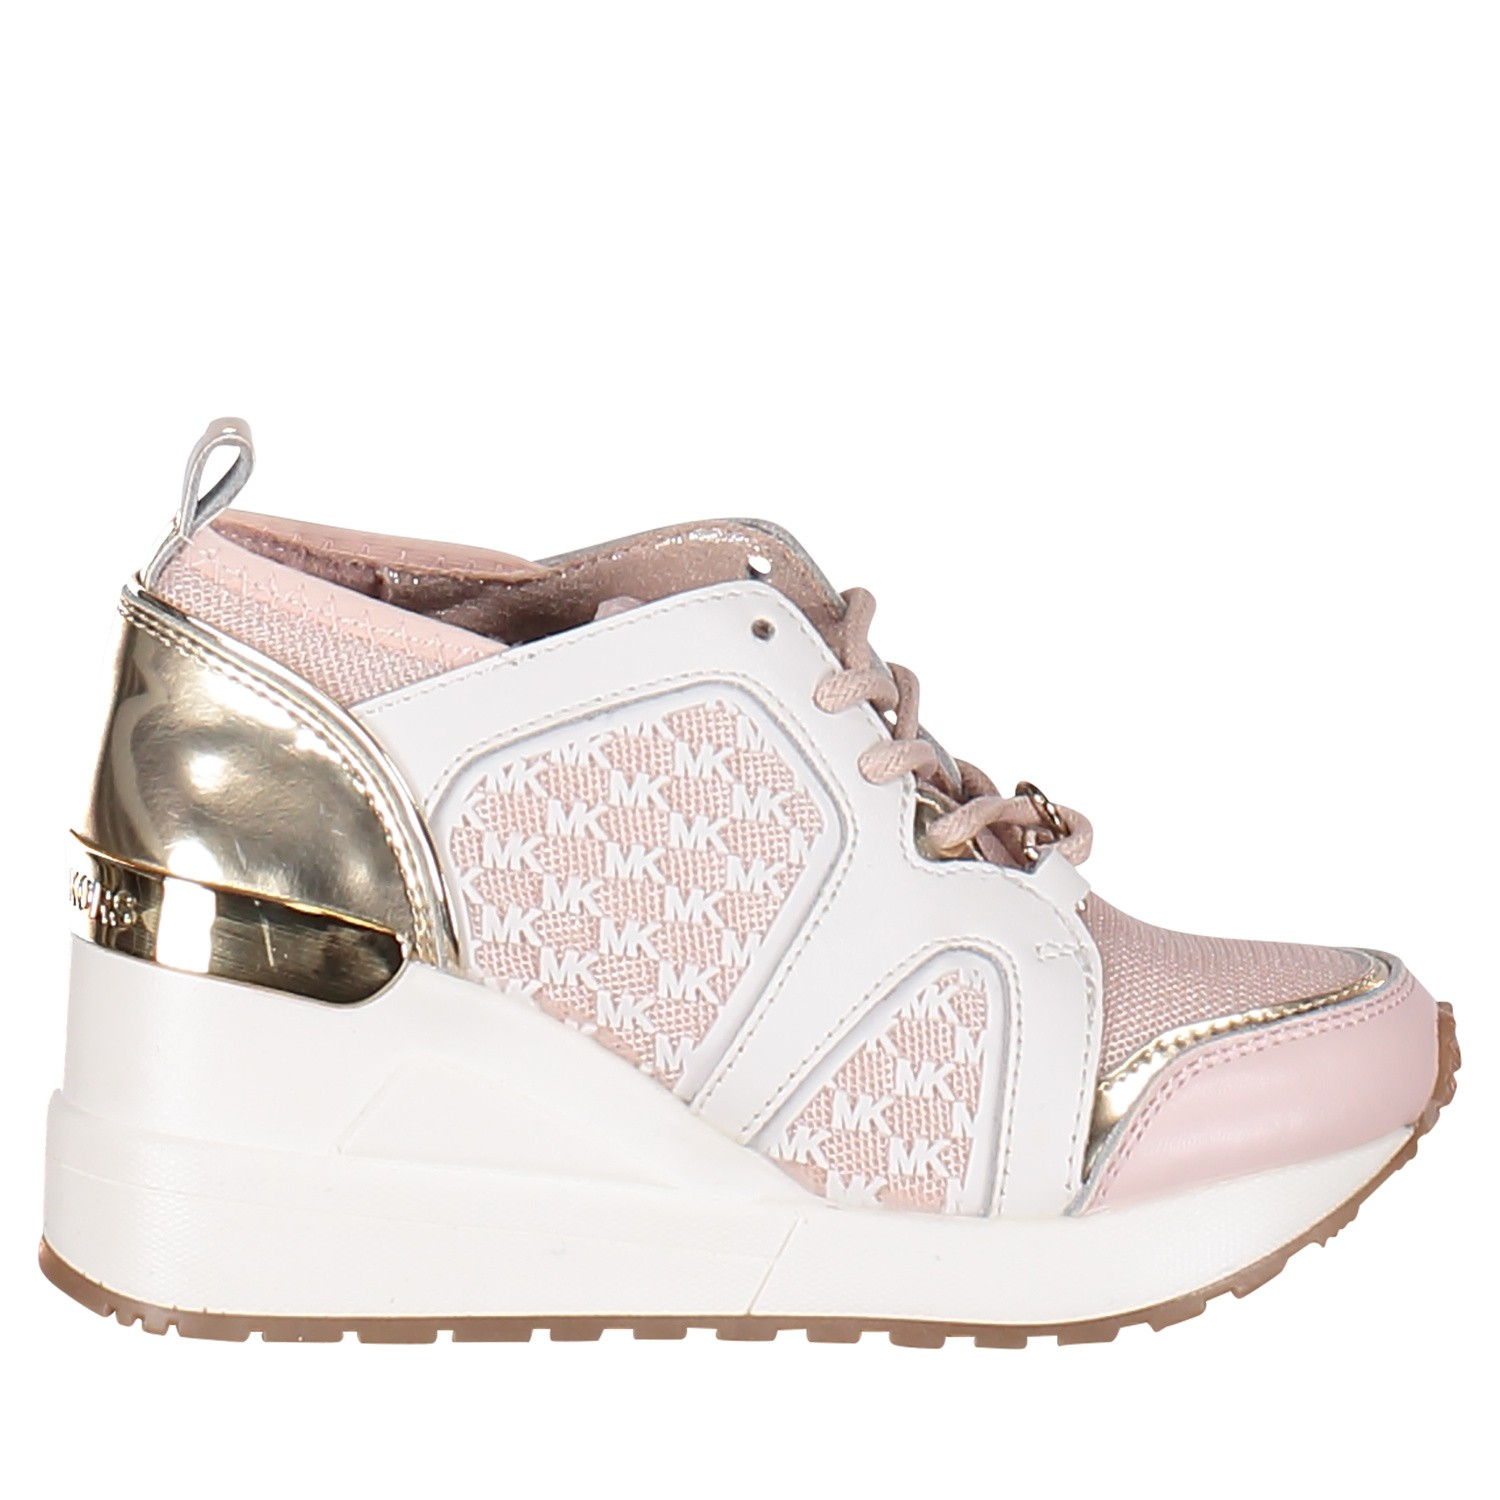 0f749fff04510f Picture of Michael Kors ZIA NEO CALI kids sneakers light pink